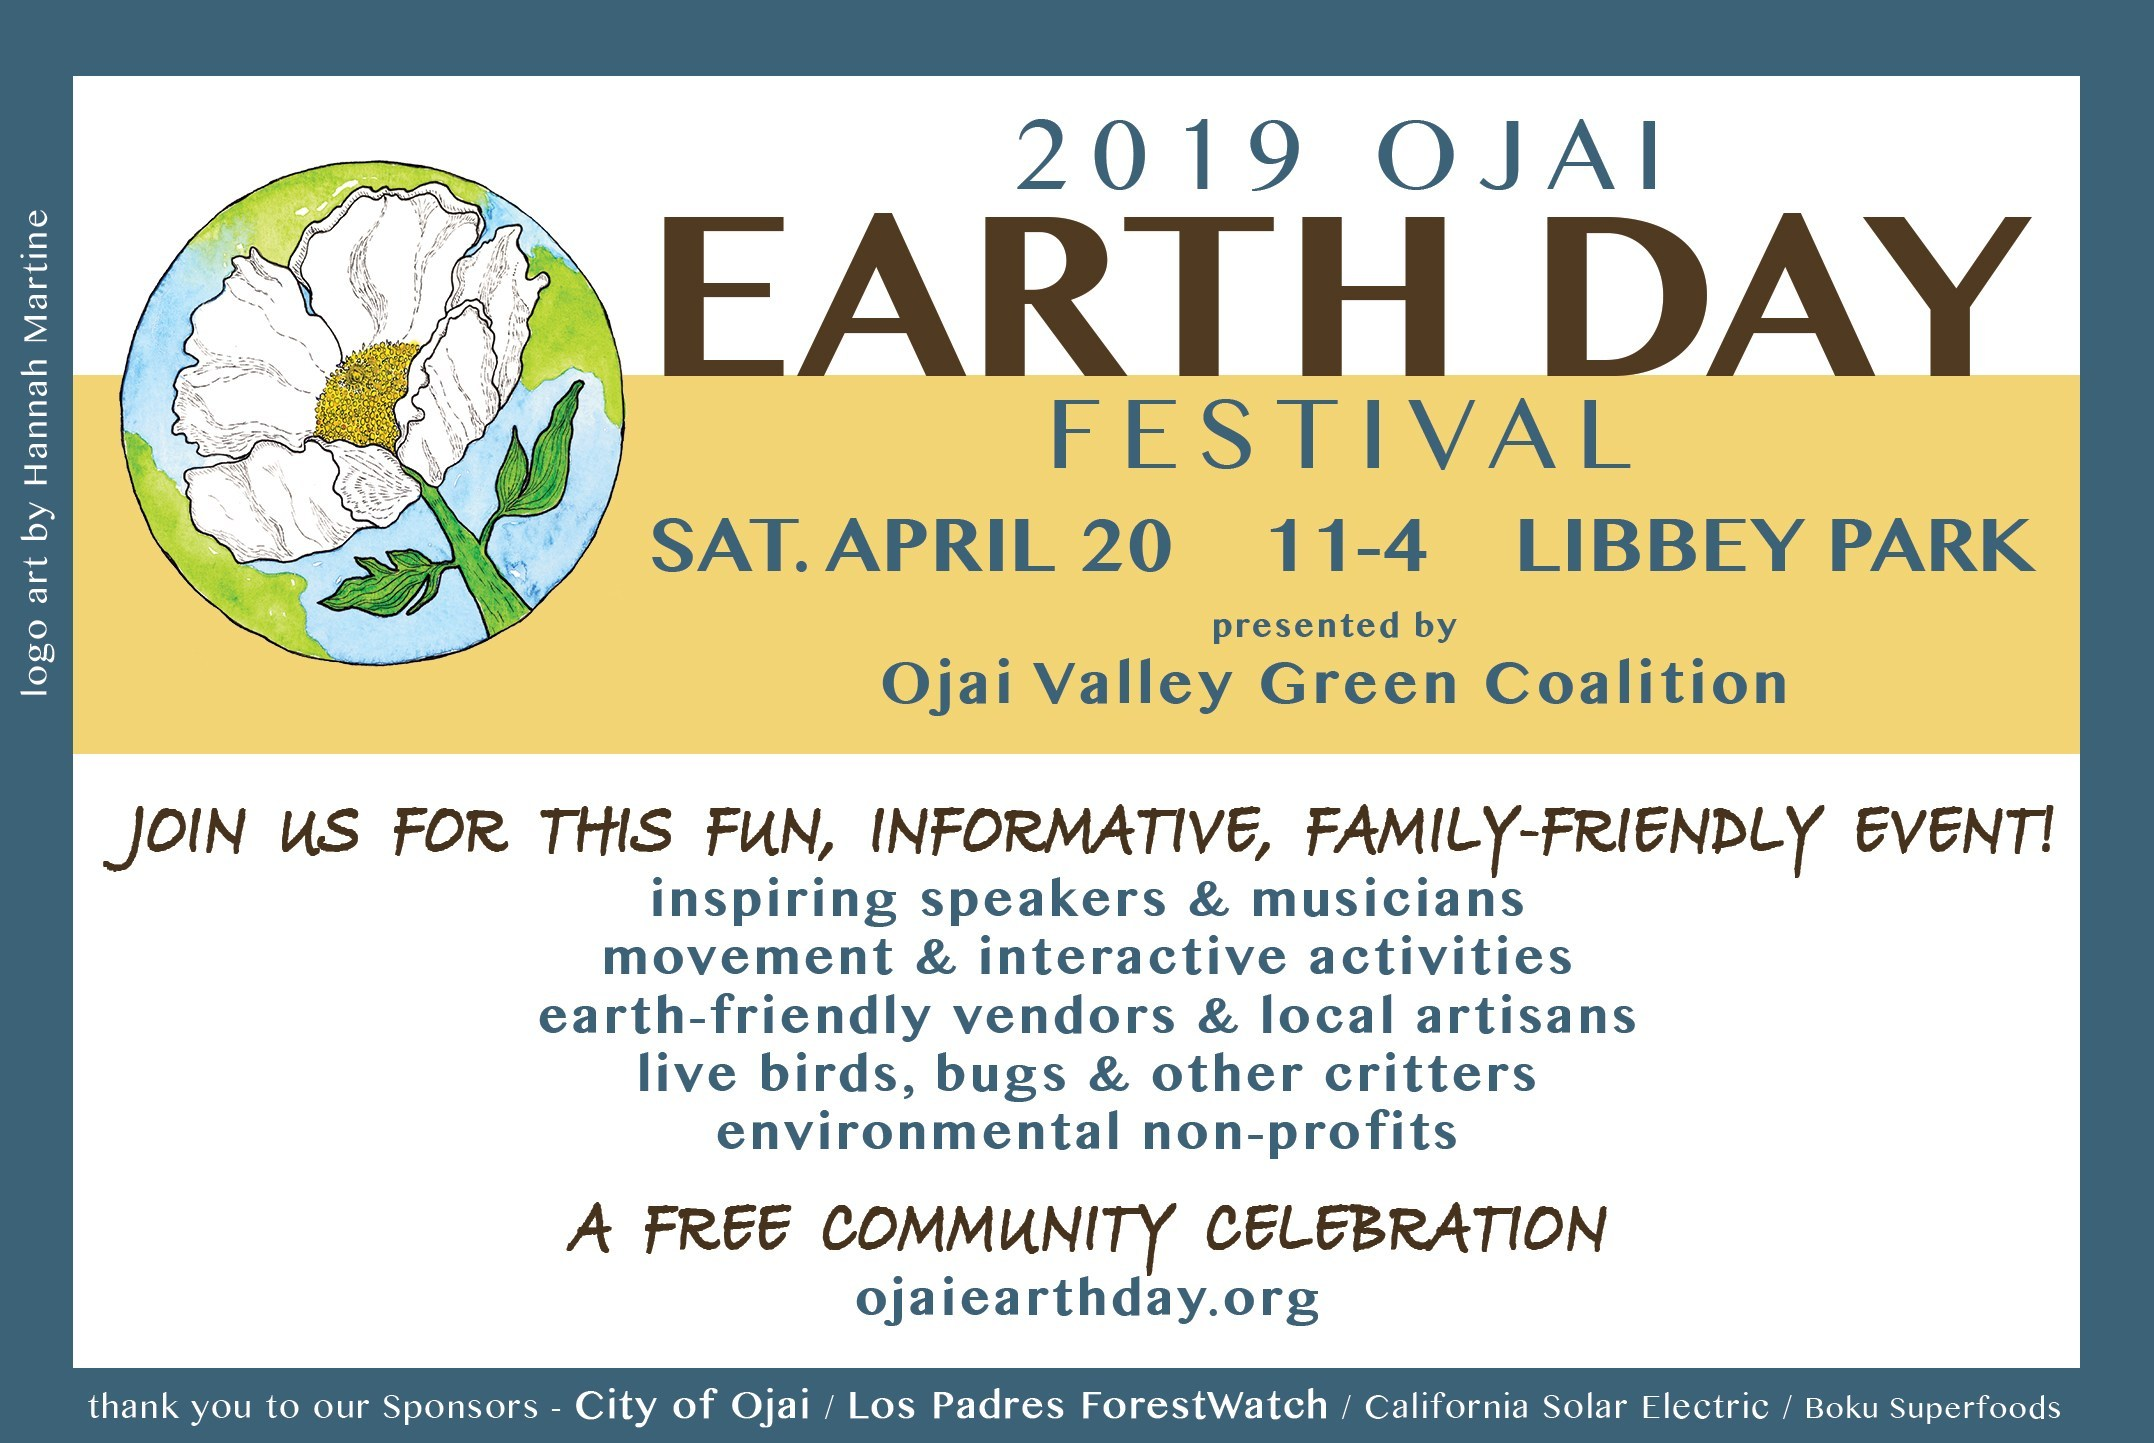 101 CBD at Ojai Earth Day Festival